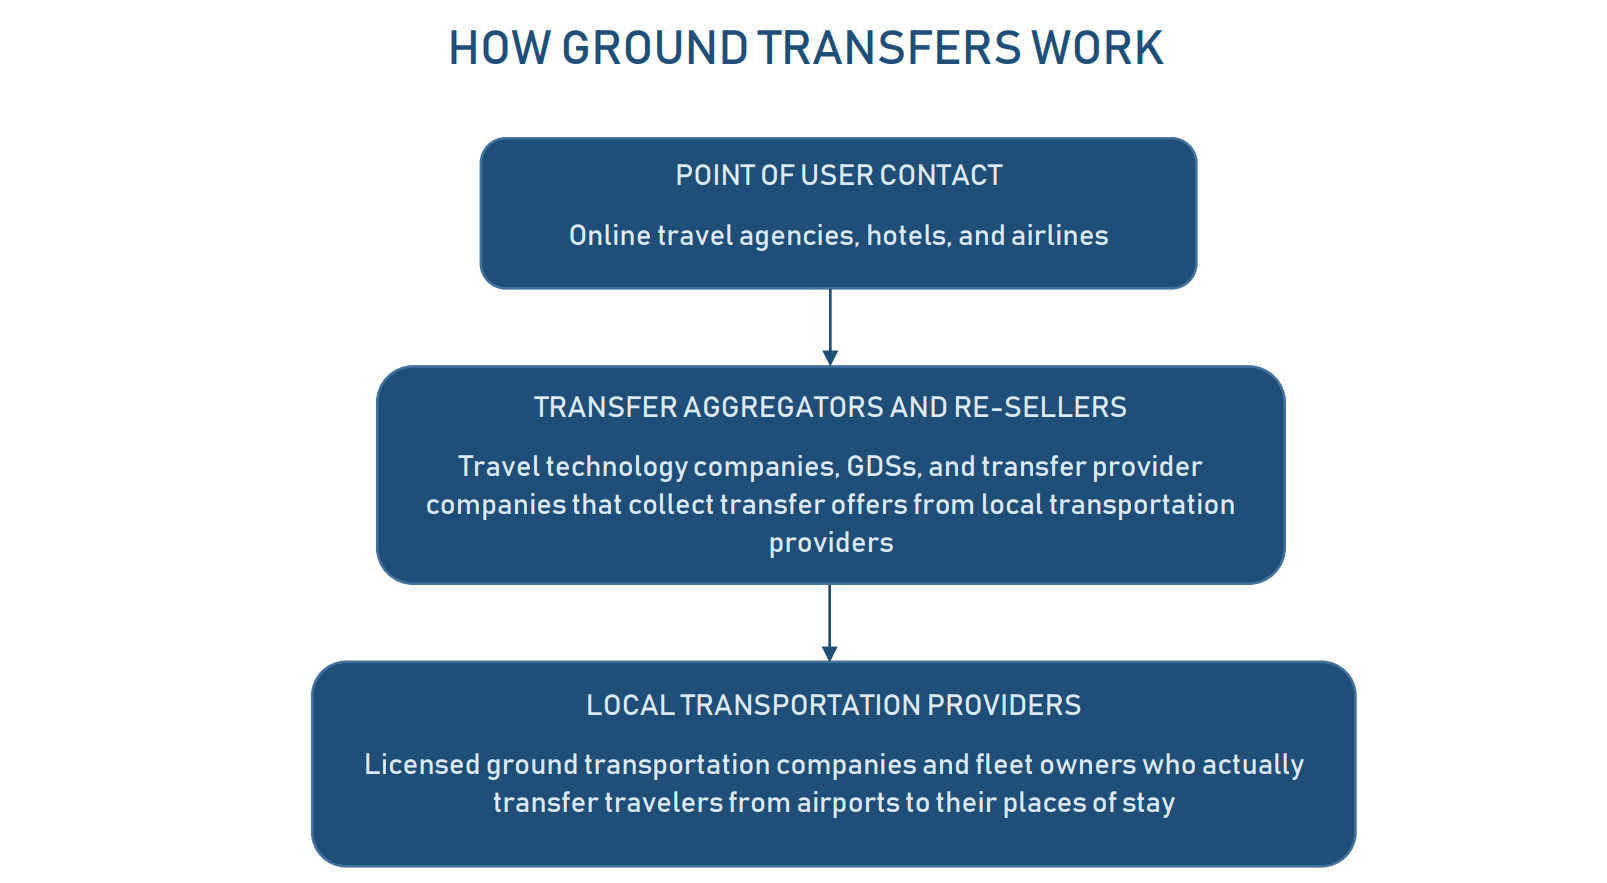 Ground transfers approach